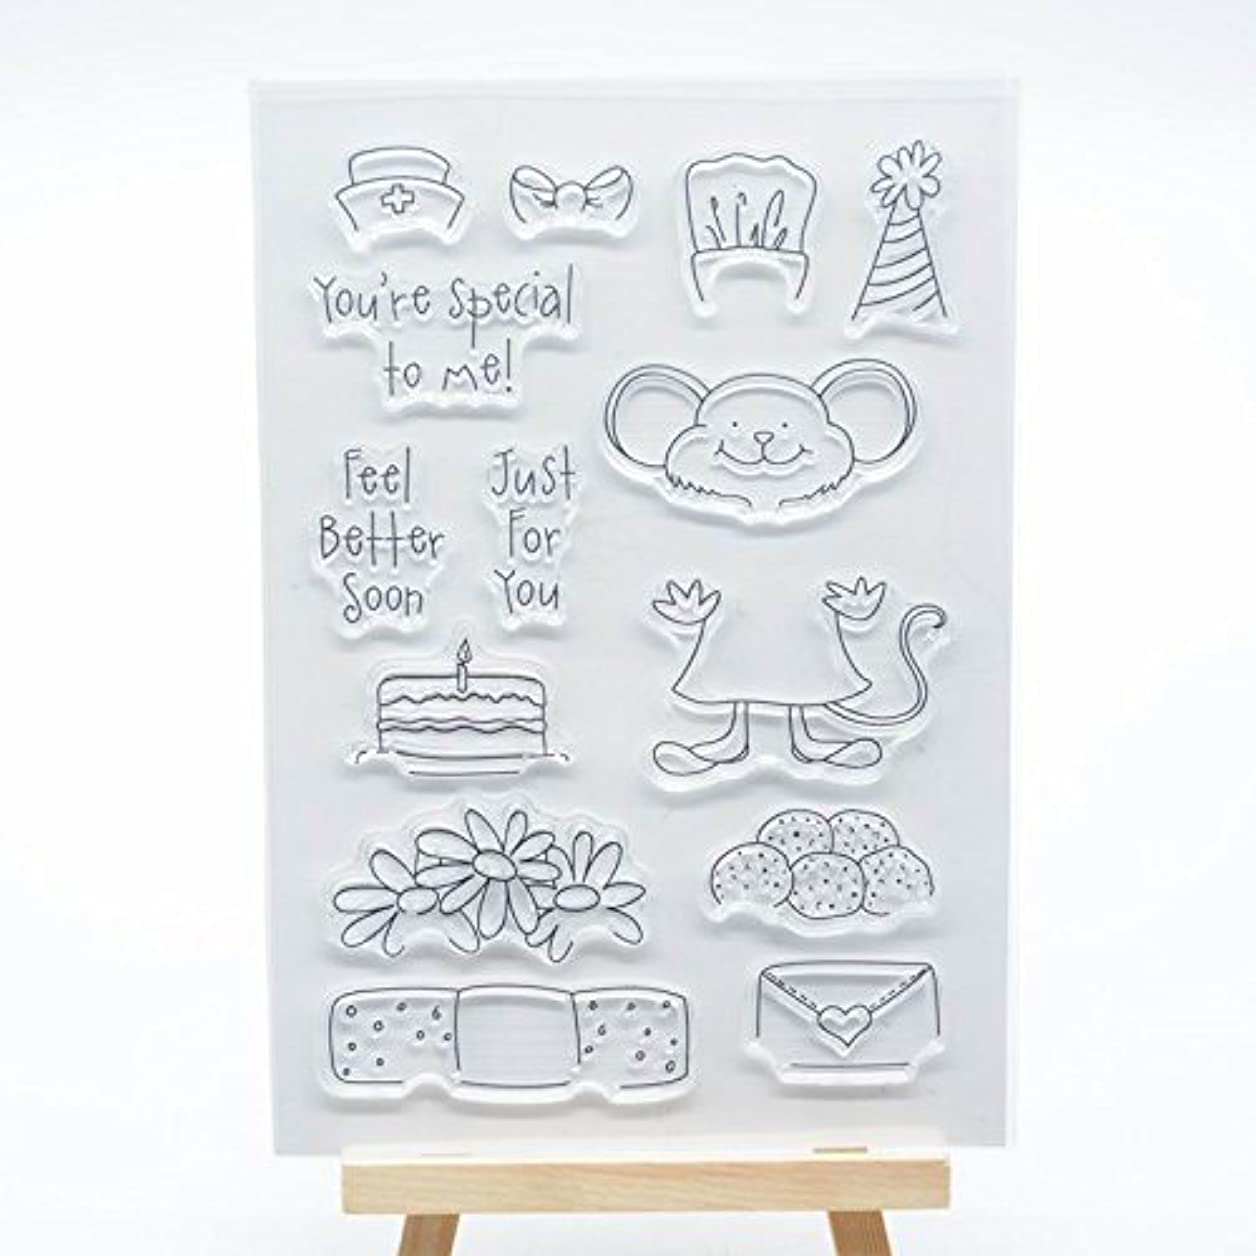 Welcome to Joyful Home 1pc You are Special to me Clear Stamp for Card Making Decoration and Scrapbooking wqiyzwednmglyqmm